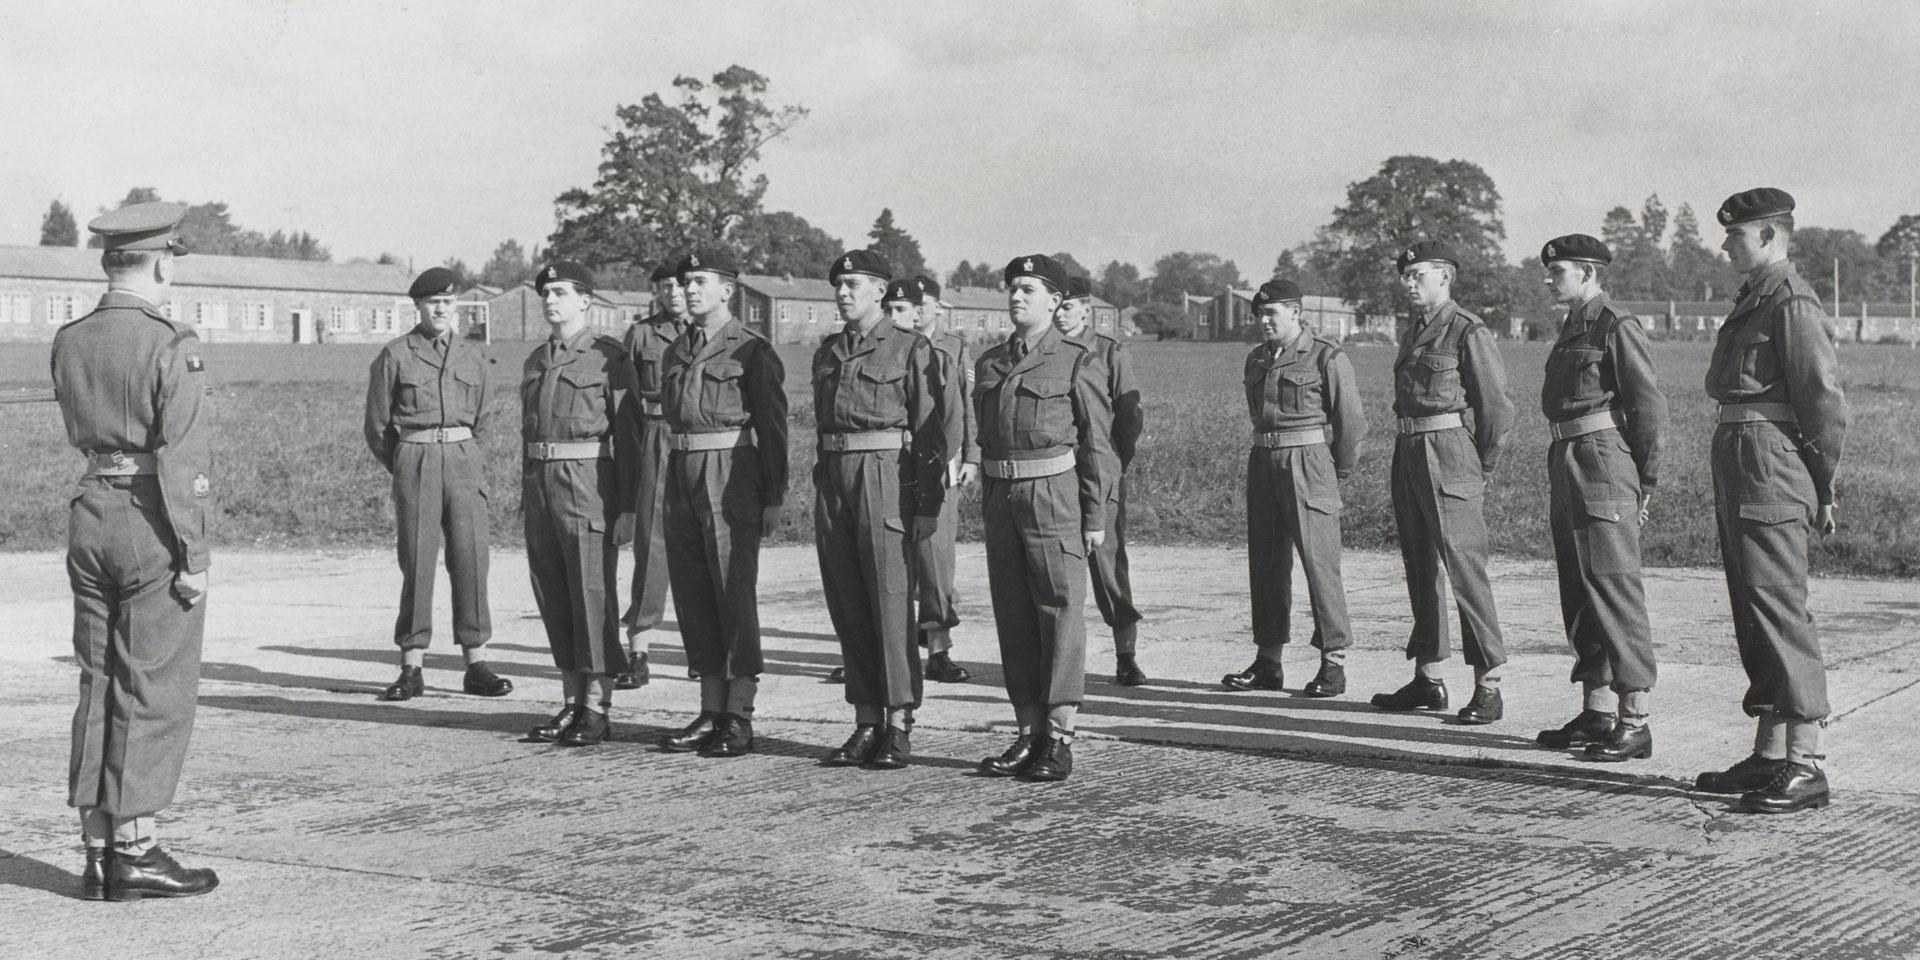 Soldiers of the Intelligence Corps on parade, c1960